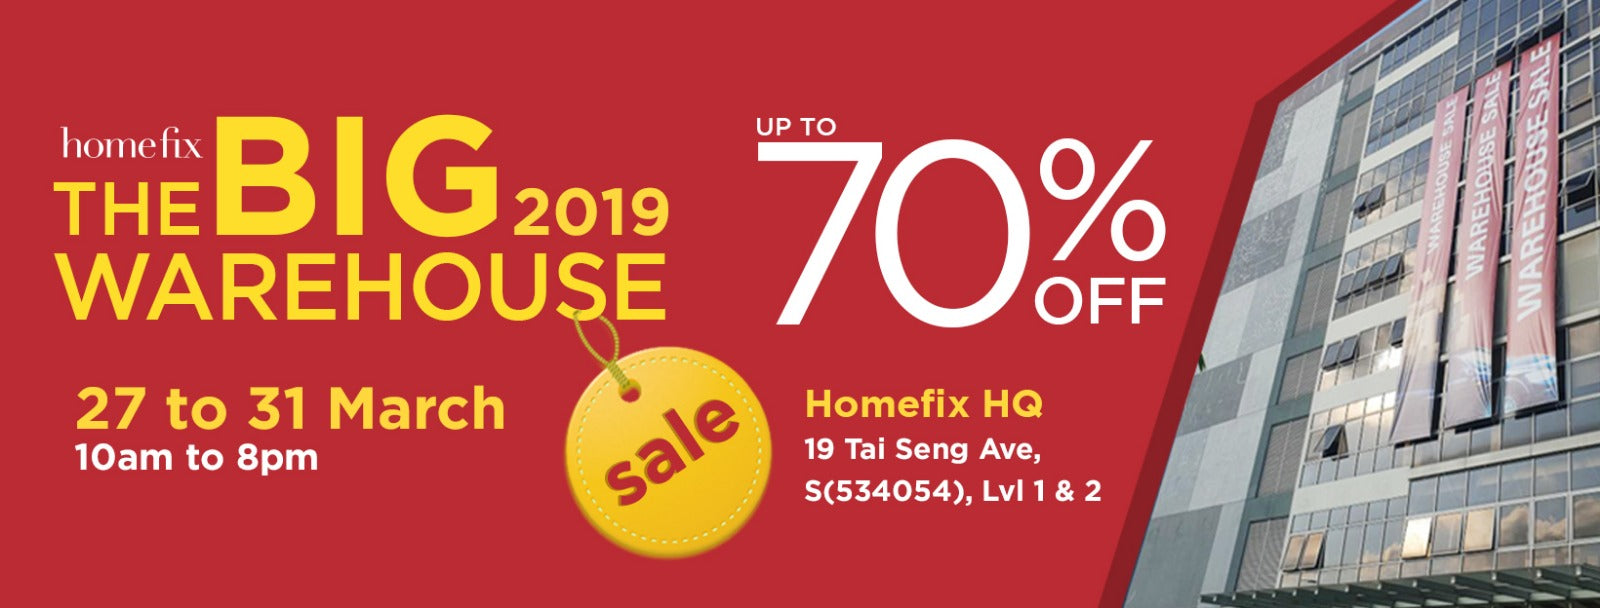 Homefix Warehouse Sale - lowest prices on home improvement products